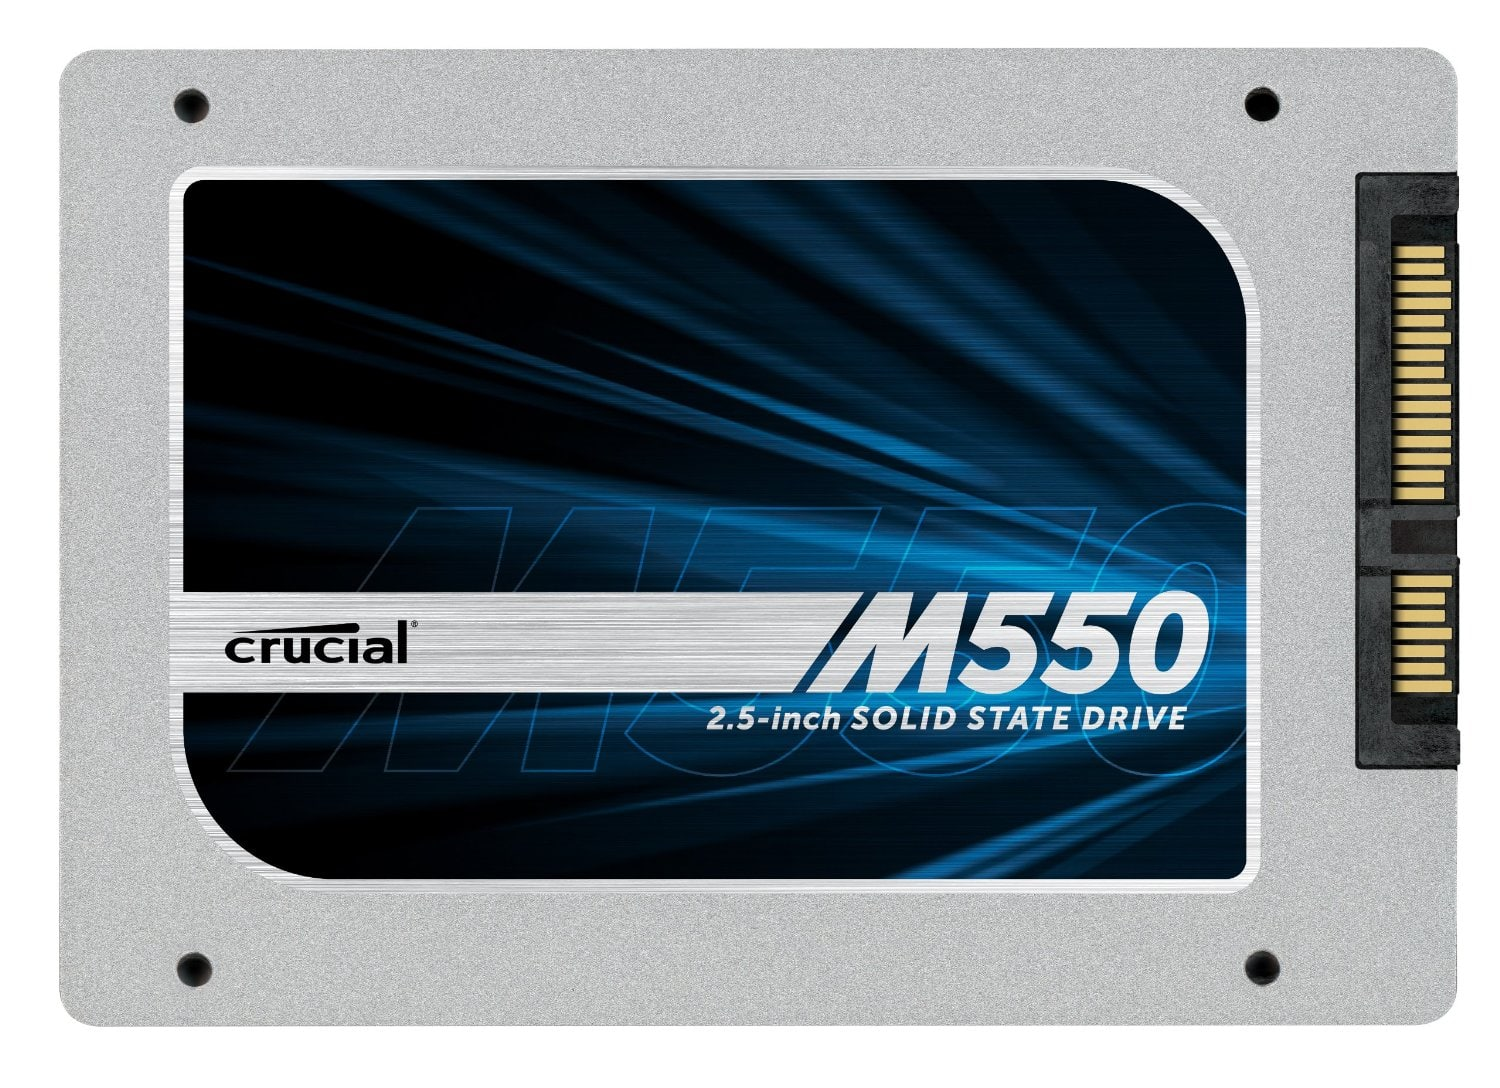 "Crucial M550 2.5"" SATA III Solid State Drive: 1TB $377, 512GB  $180 or Less + Free Shipping"